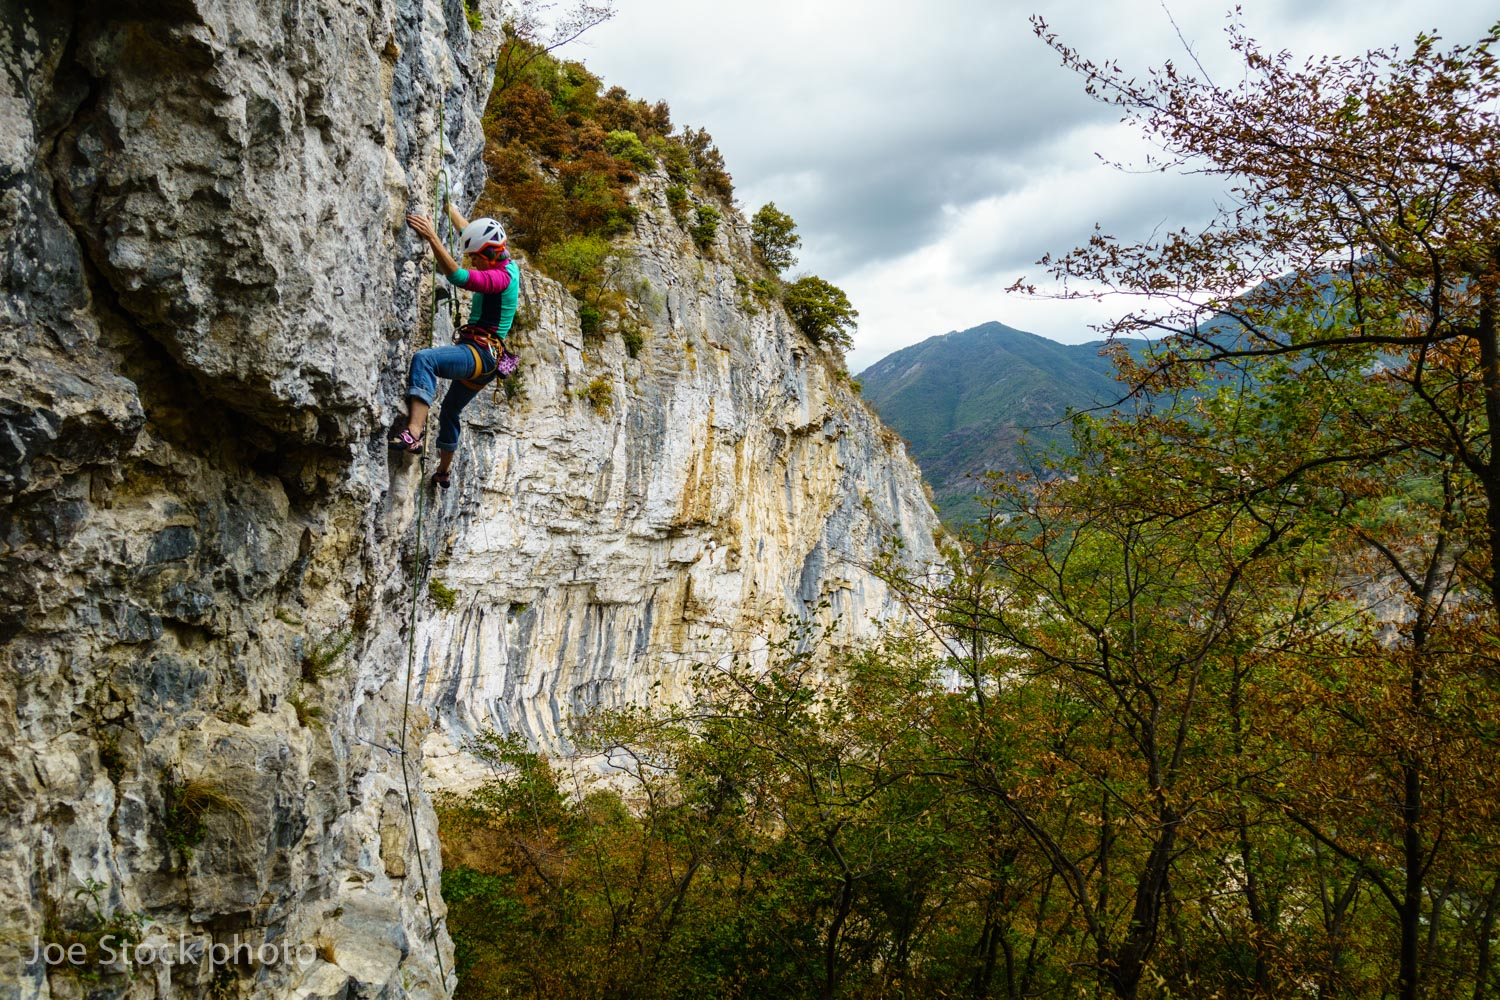 Cathy climbing in Oltre Finale, belayed by Andrew. Finale is on the Mediterranean, where the weather is always better.